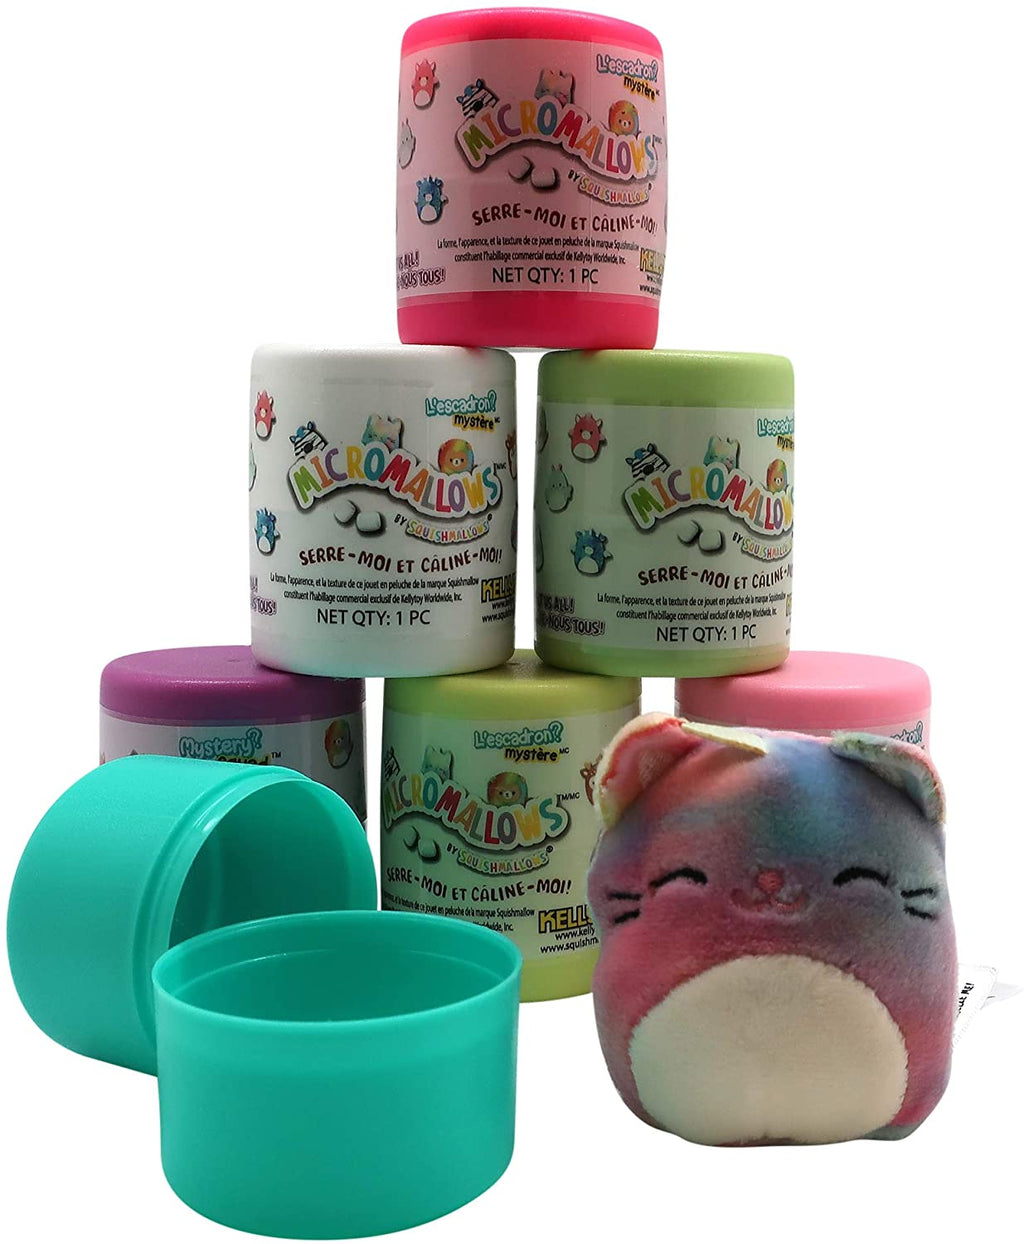 "Squishmallows Micromallows Toy Set of 3 - 2.5"" Squishy Mini Mystery Squad in Capsules, Assorted Colors & Designs"